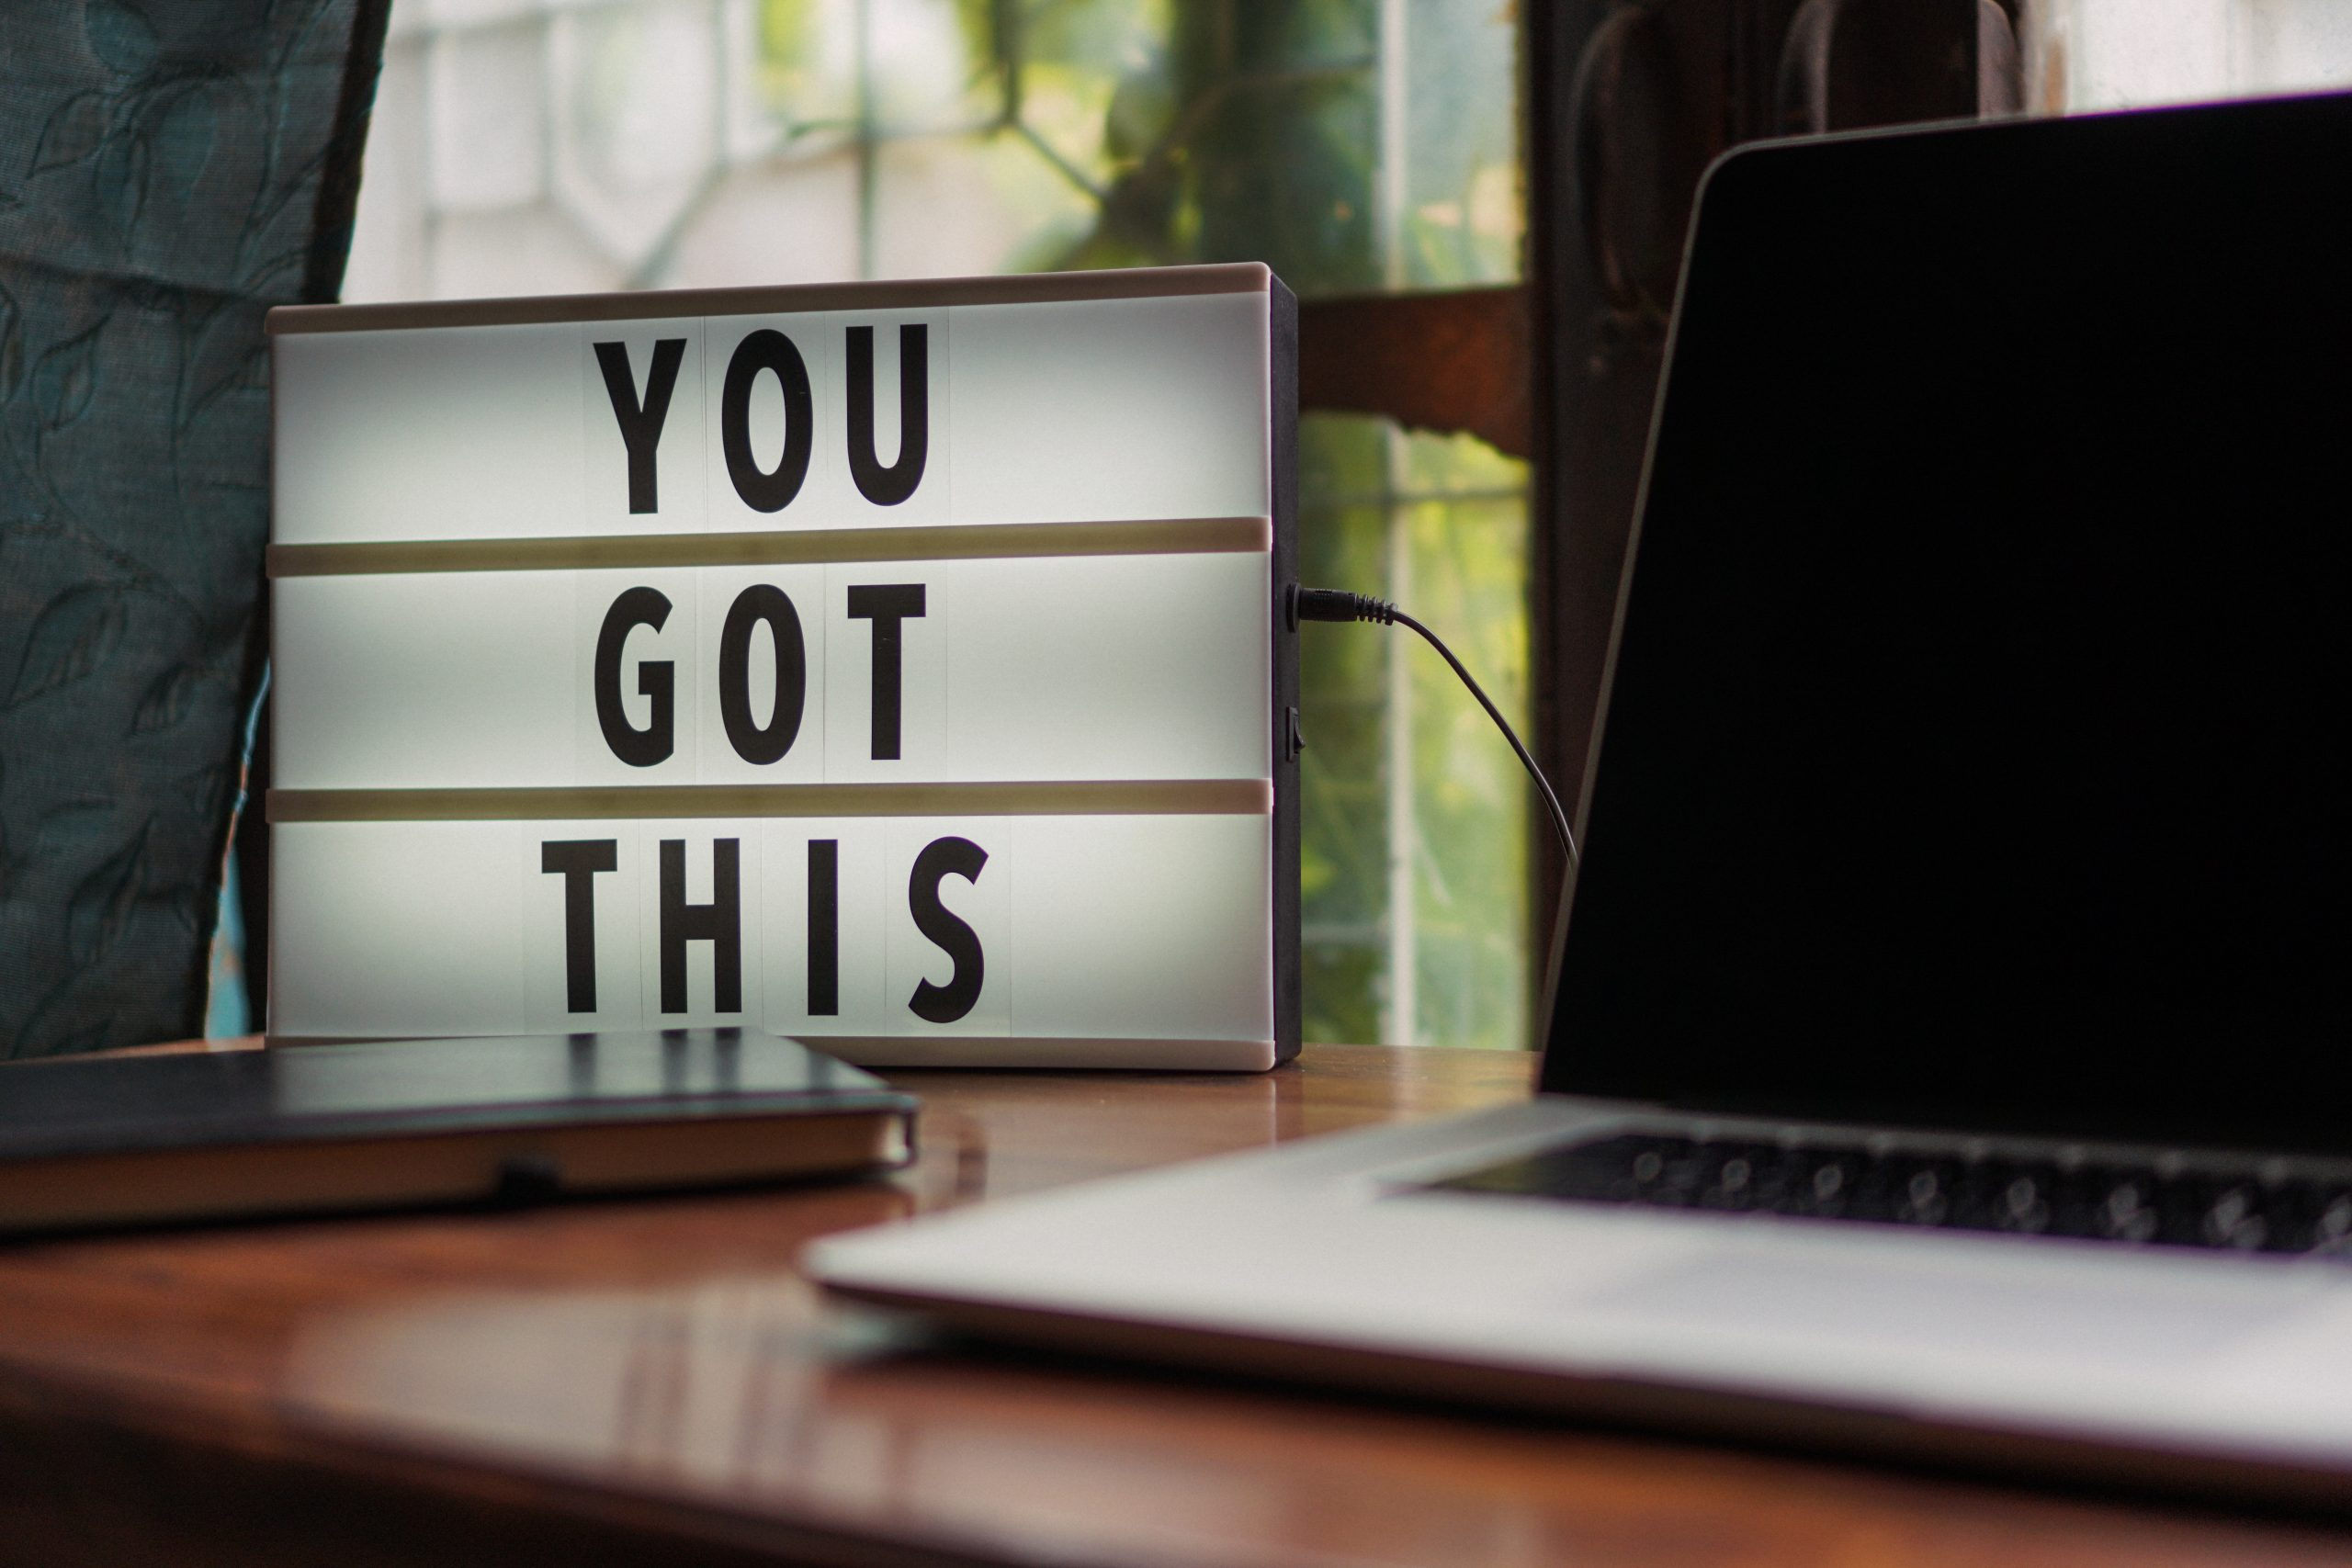 You got this sign with laptop - pace yourself - - prevent and overcome burnout